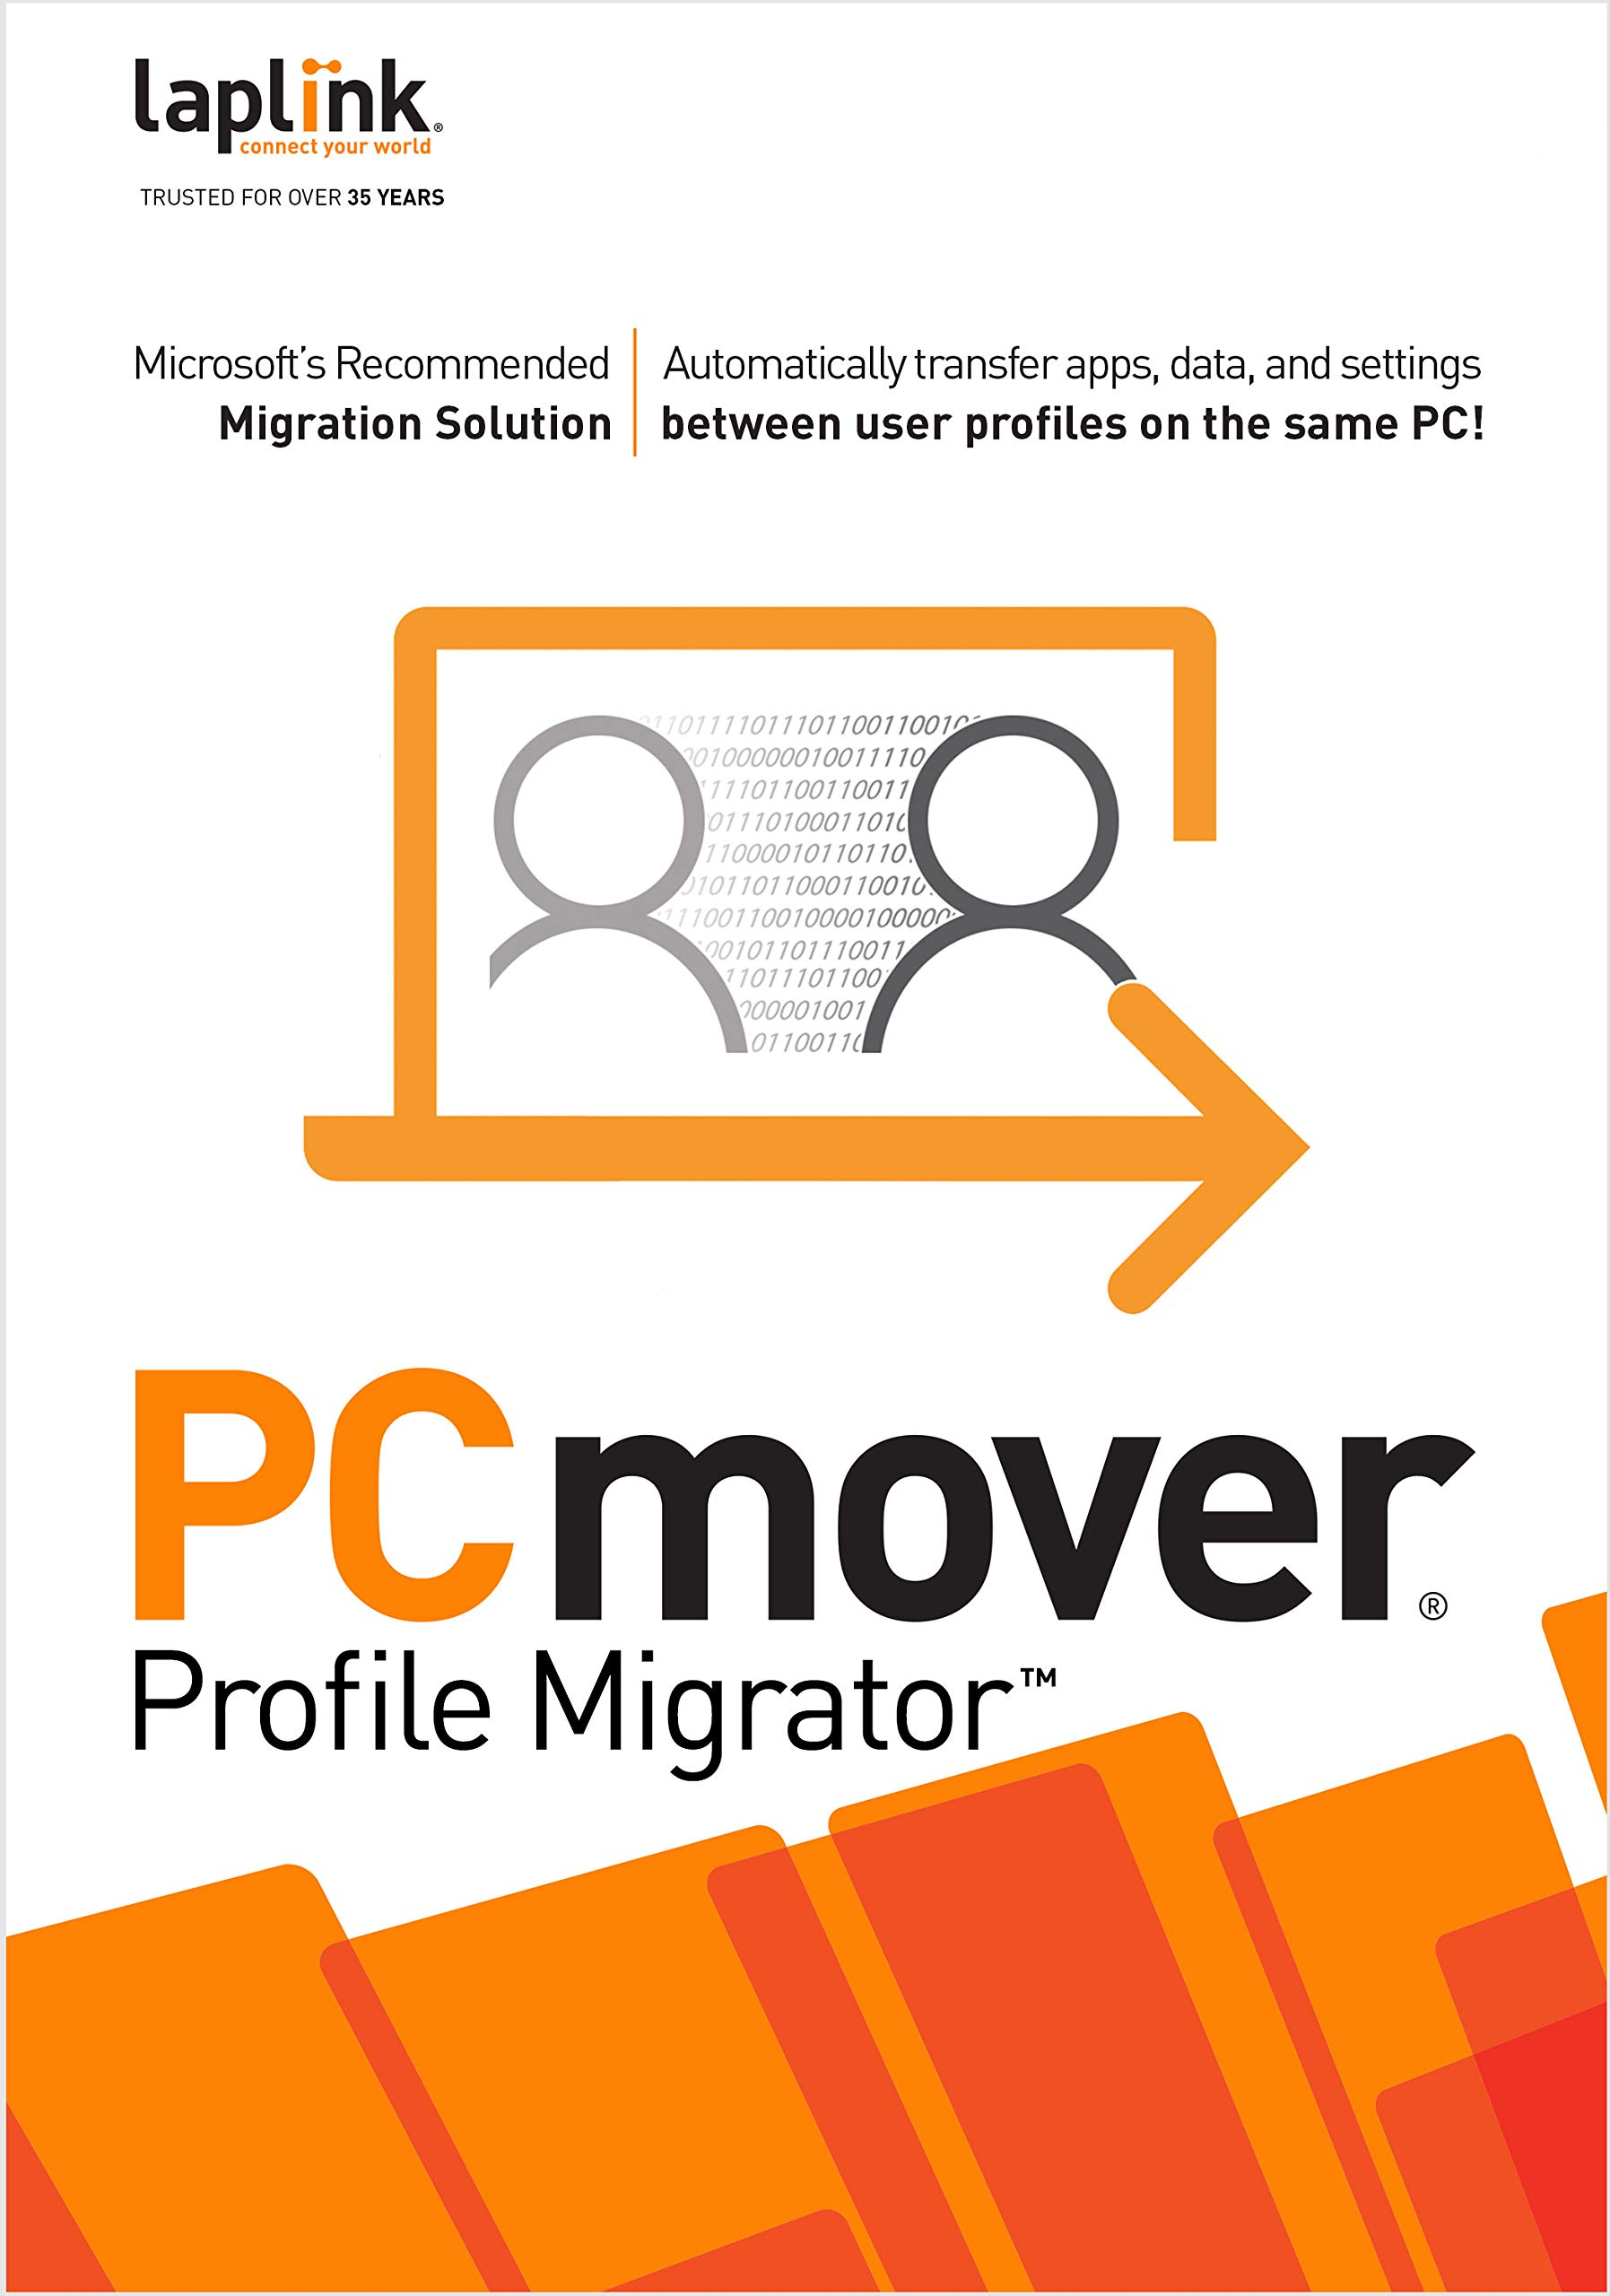 PCmover Profile Migrator (1 Use) [PC Download] by Laplink Software, Inc.